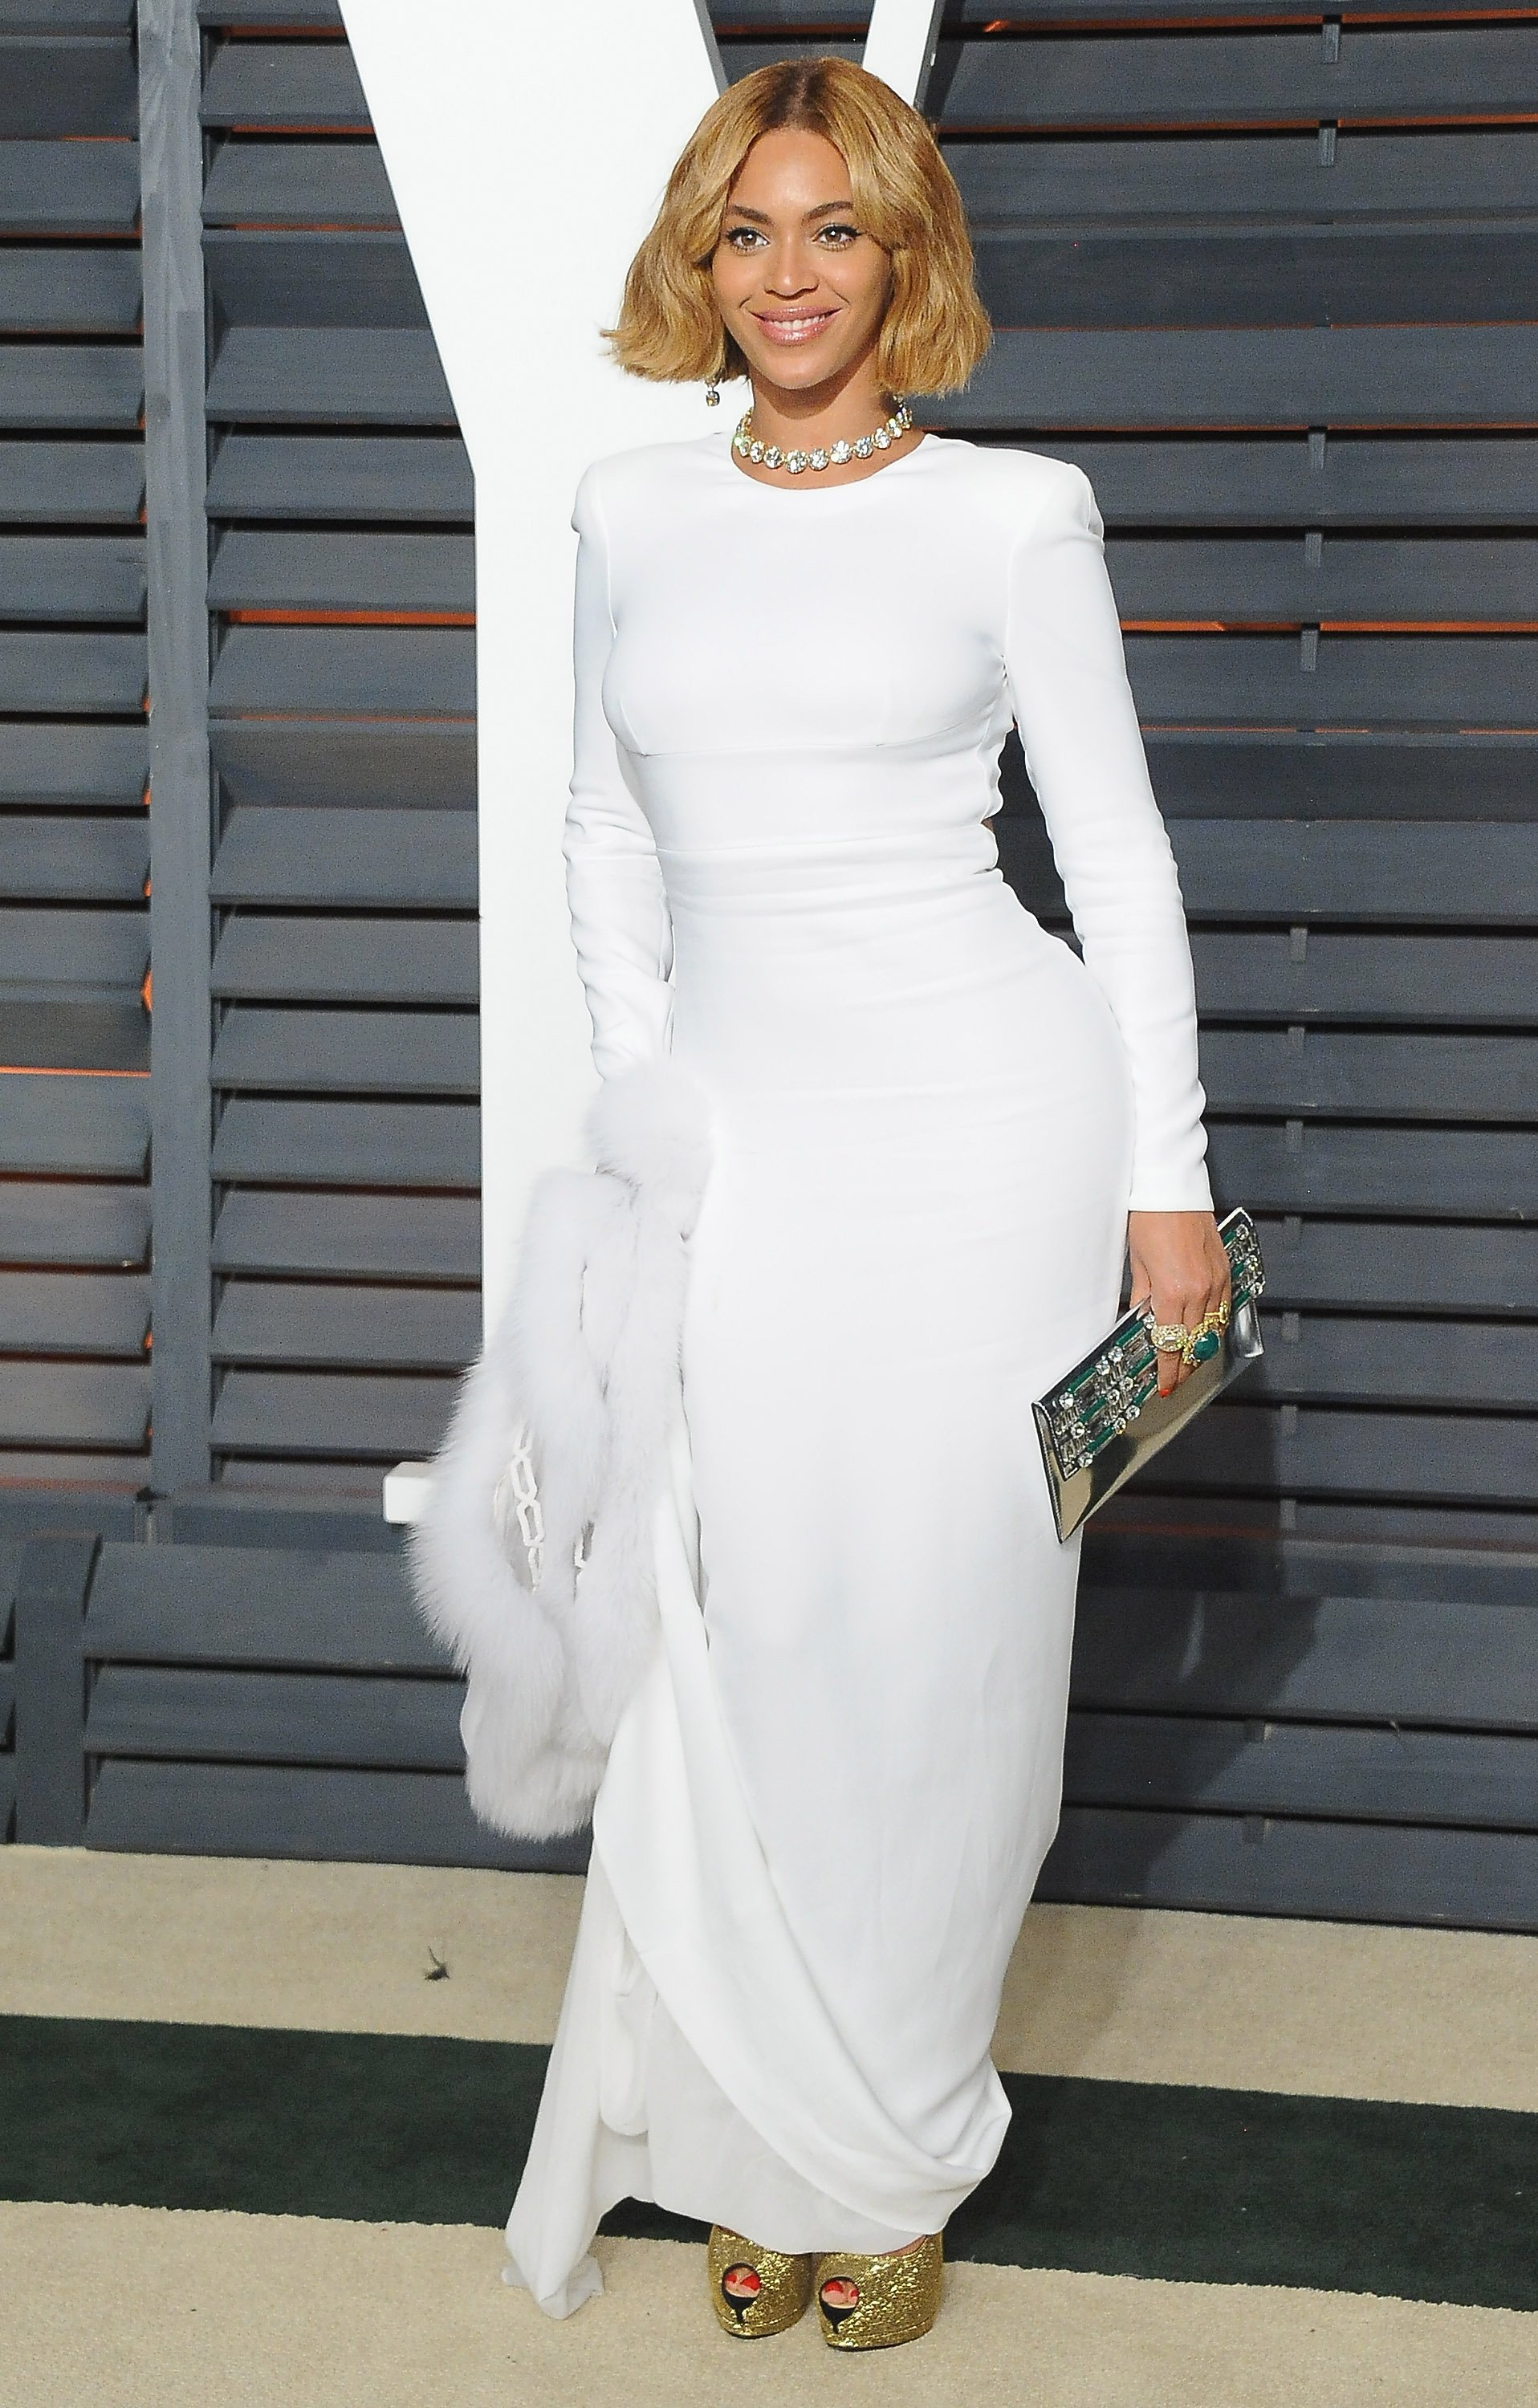 Image Credit: Getty Images/FilmMagic/Jon Kopaloff | Beyonce at the Vanity Fair Oscar Party